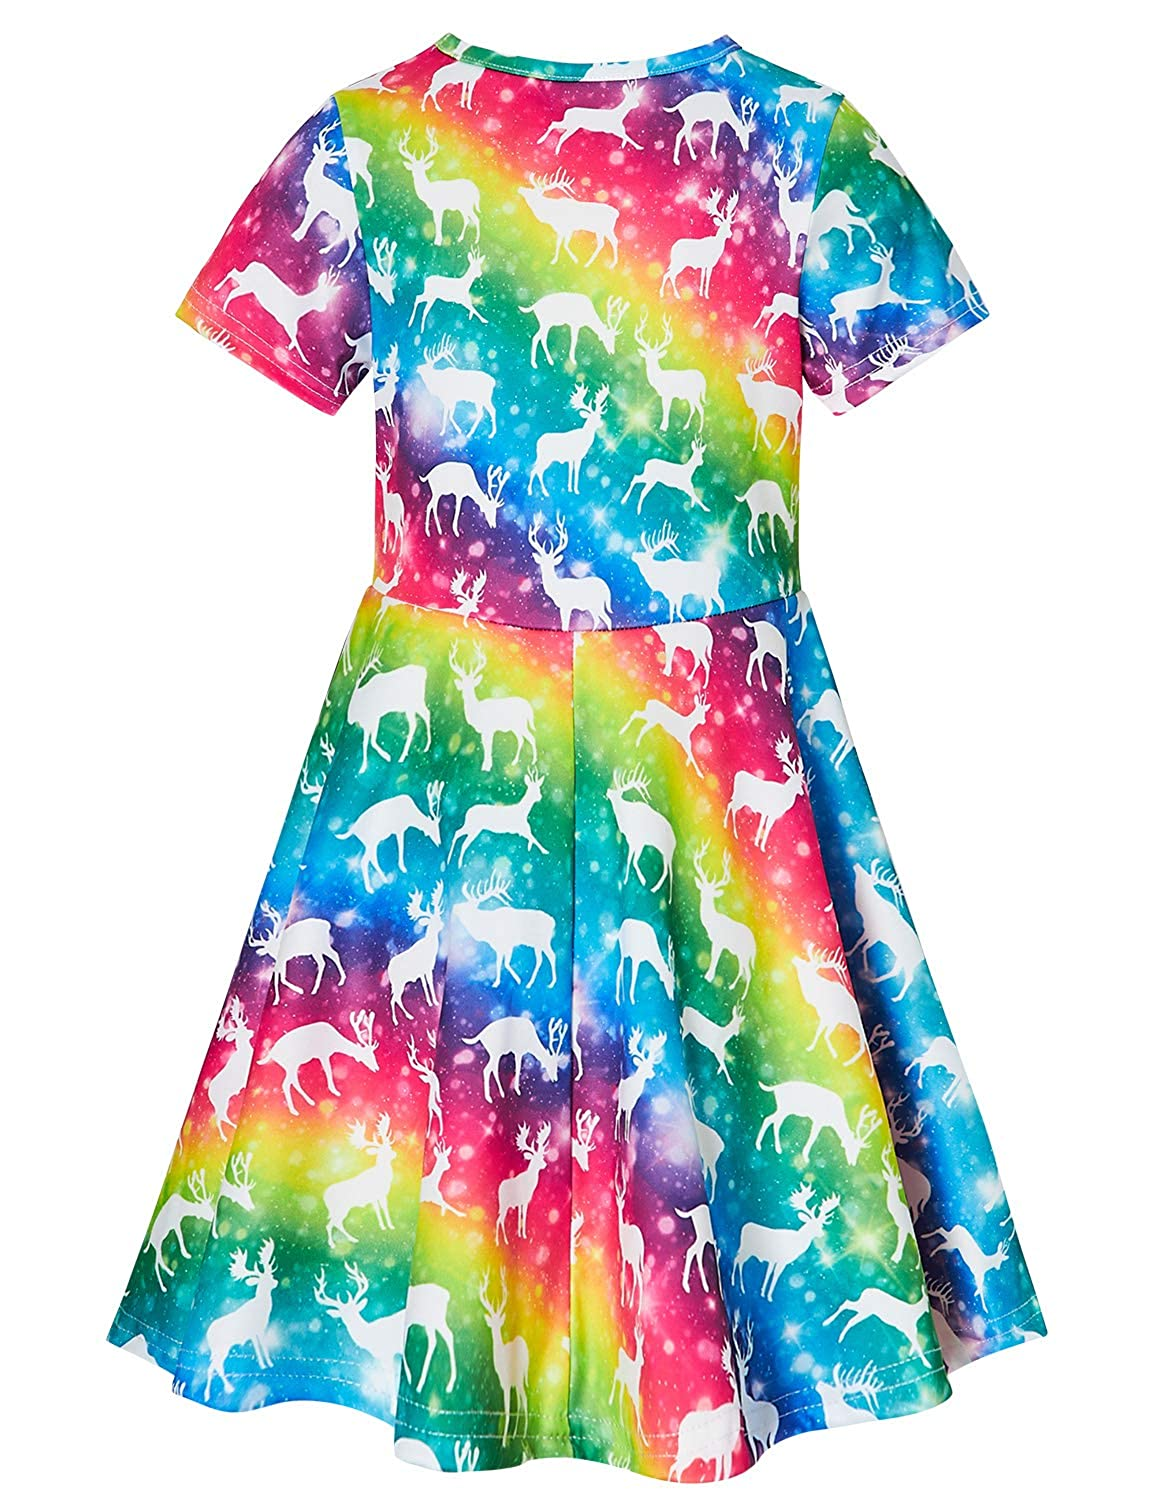 RAISEVERN Ugly Christmas Dress Girls Short Sleeve Dress for Holiday Party